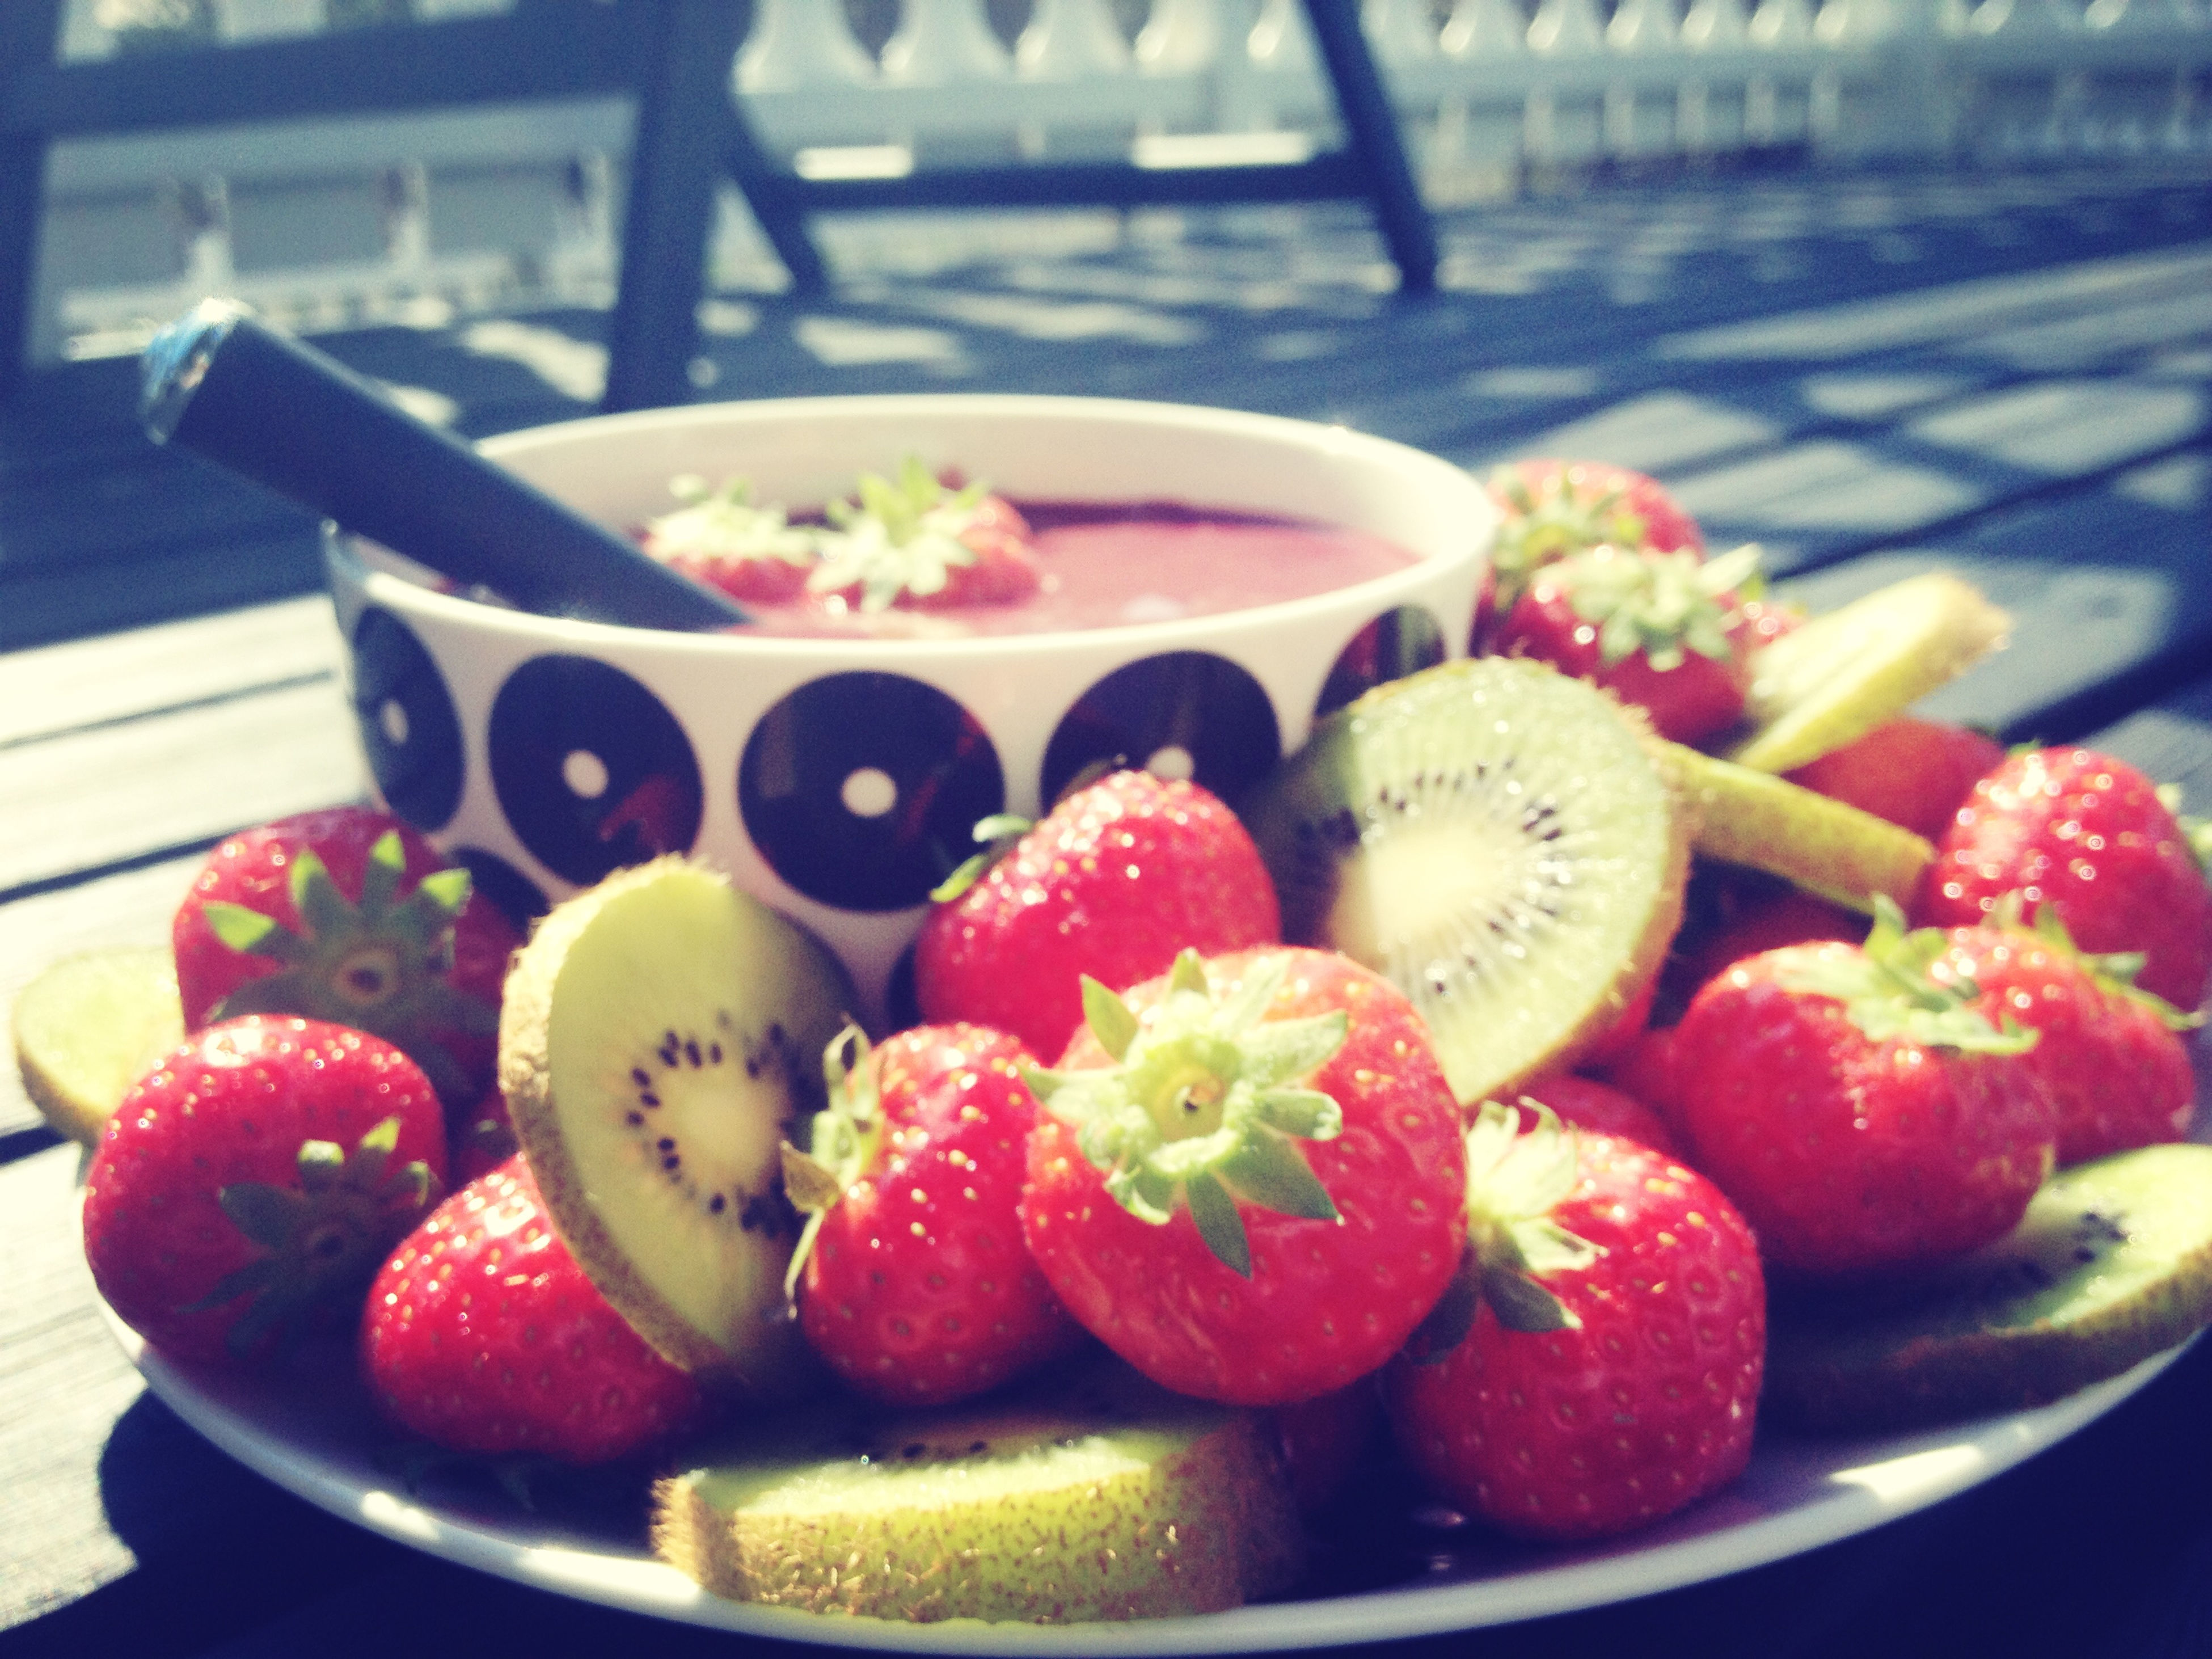 food and drink, food, freshness, fruit, healthy eating, strawberry, indoors, still life, table, red, bowl, close-up, sweet food, ready-to-eat, raspberry, plate, ripe, focus on foreground, indulgence, berry fruit